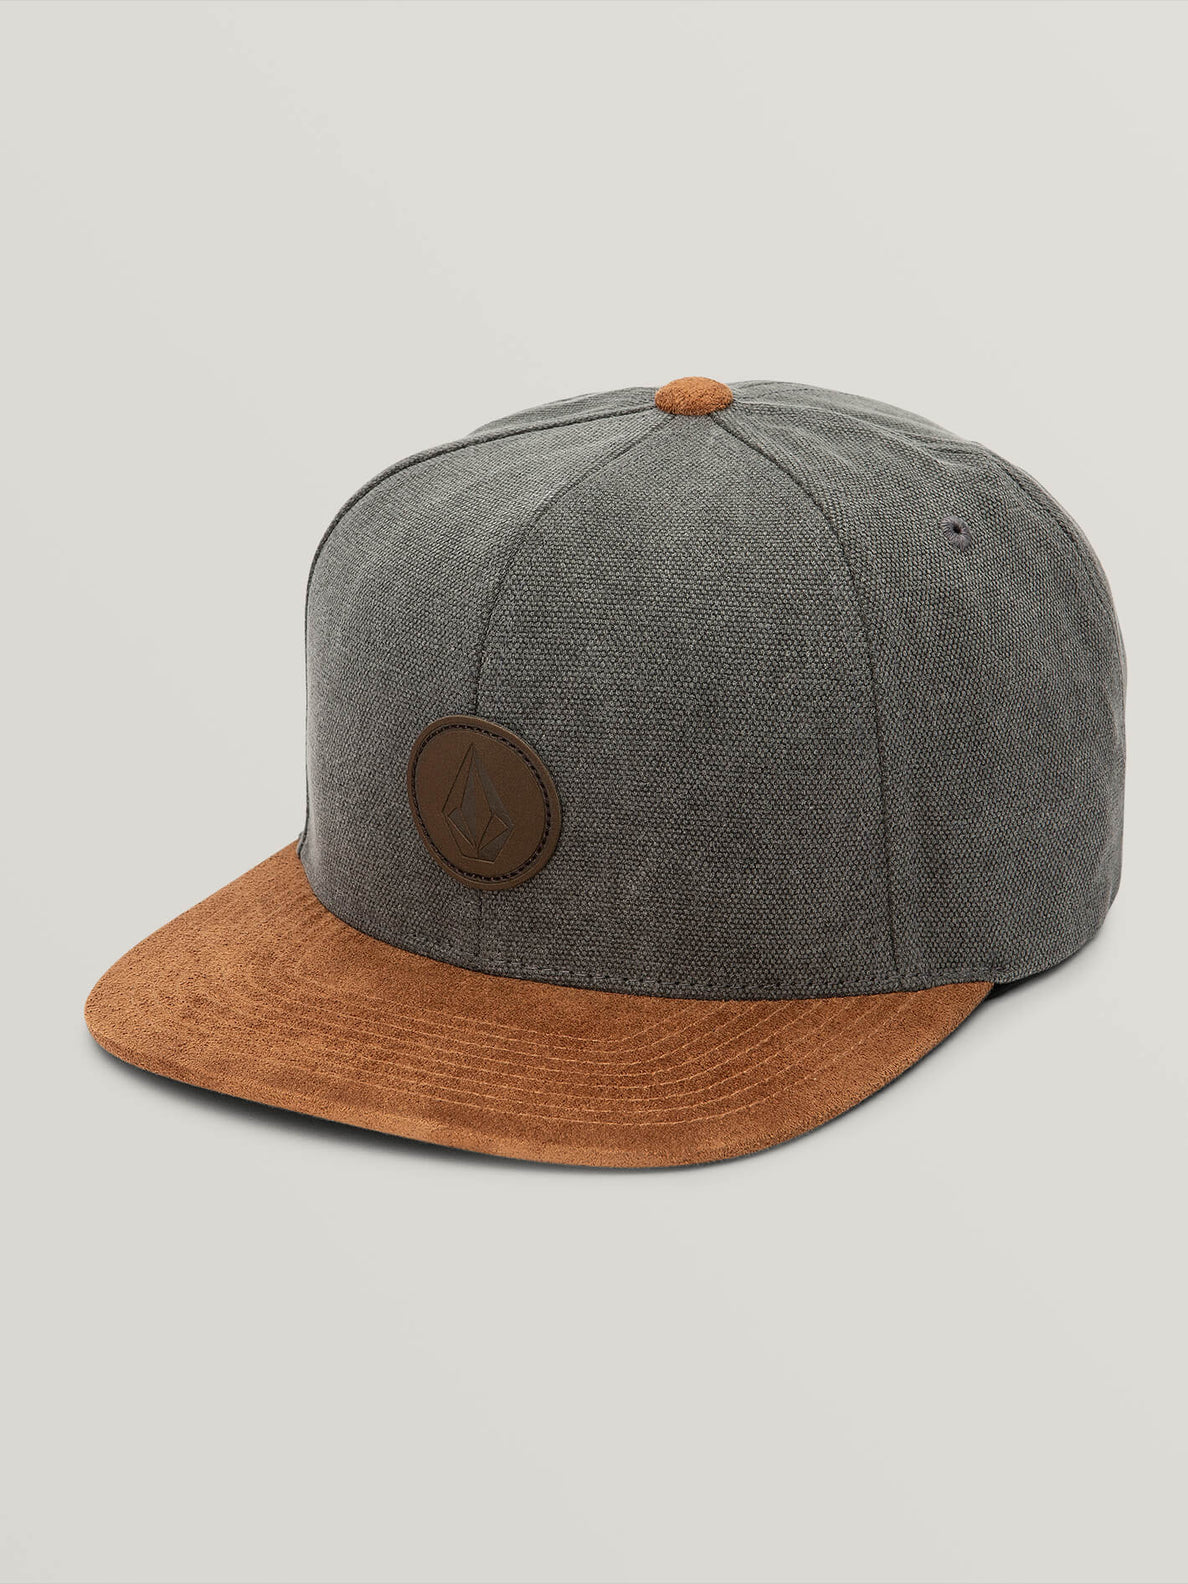 Quarter Fabric Hat - Slate Grey